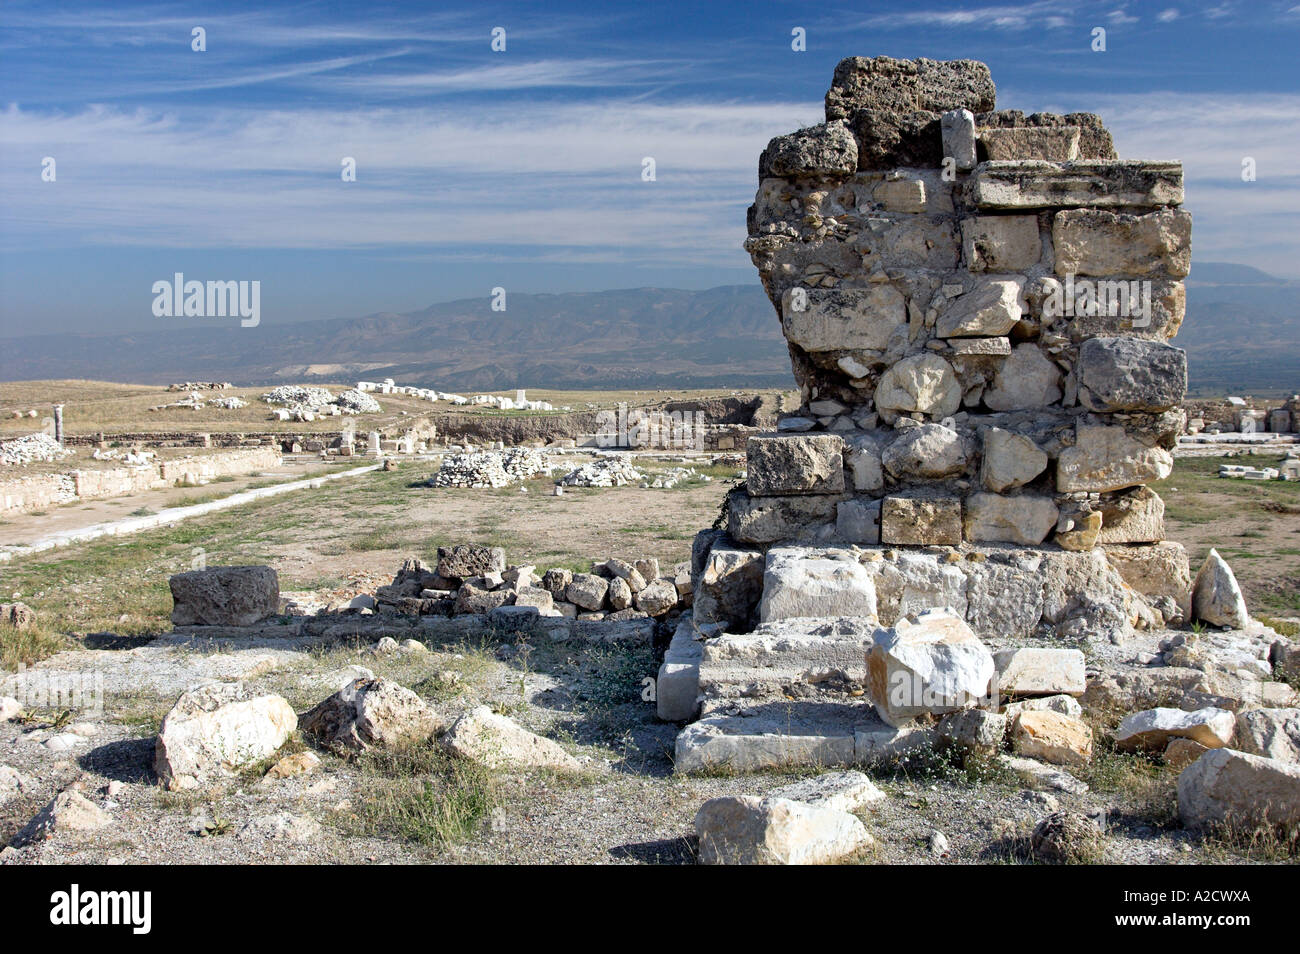 The Ruins Of The Former Biblical Site Laodicea, Turkey ...